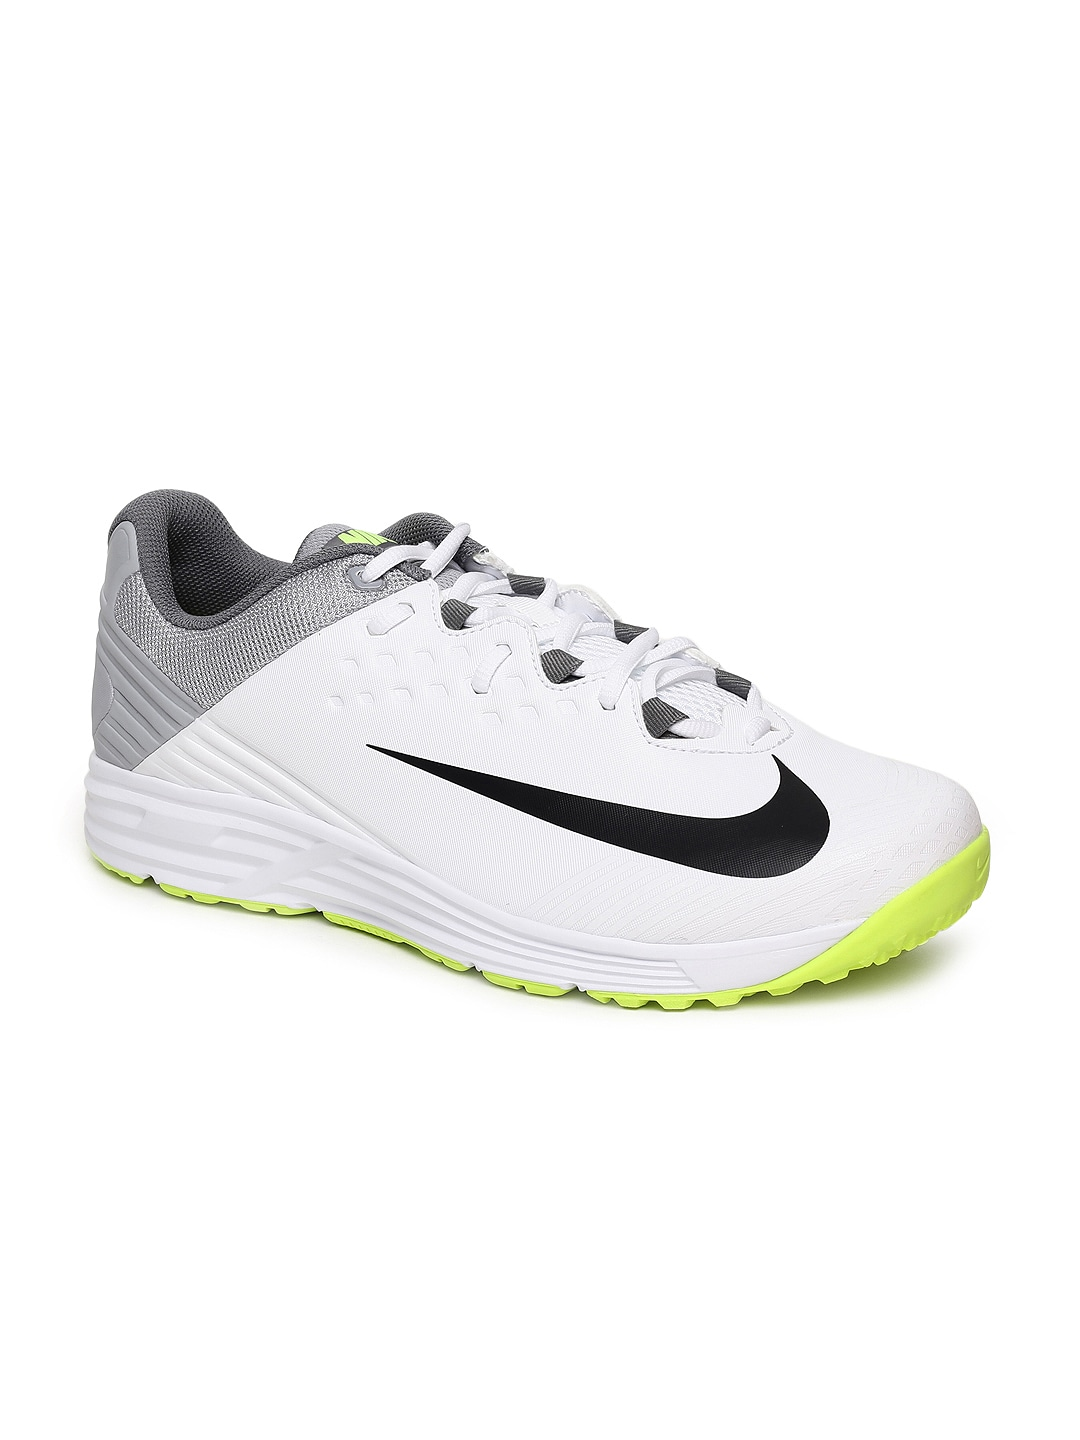 16a36b1aa83 White Sports Shoes - Buy White Sports